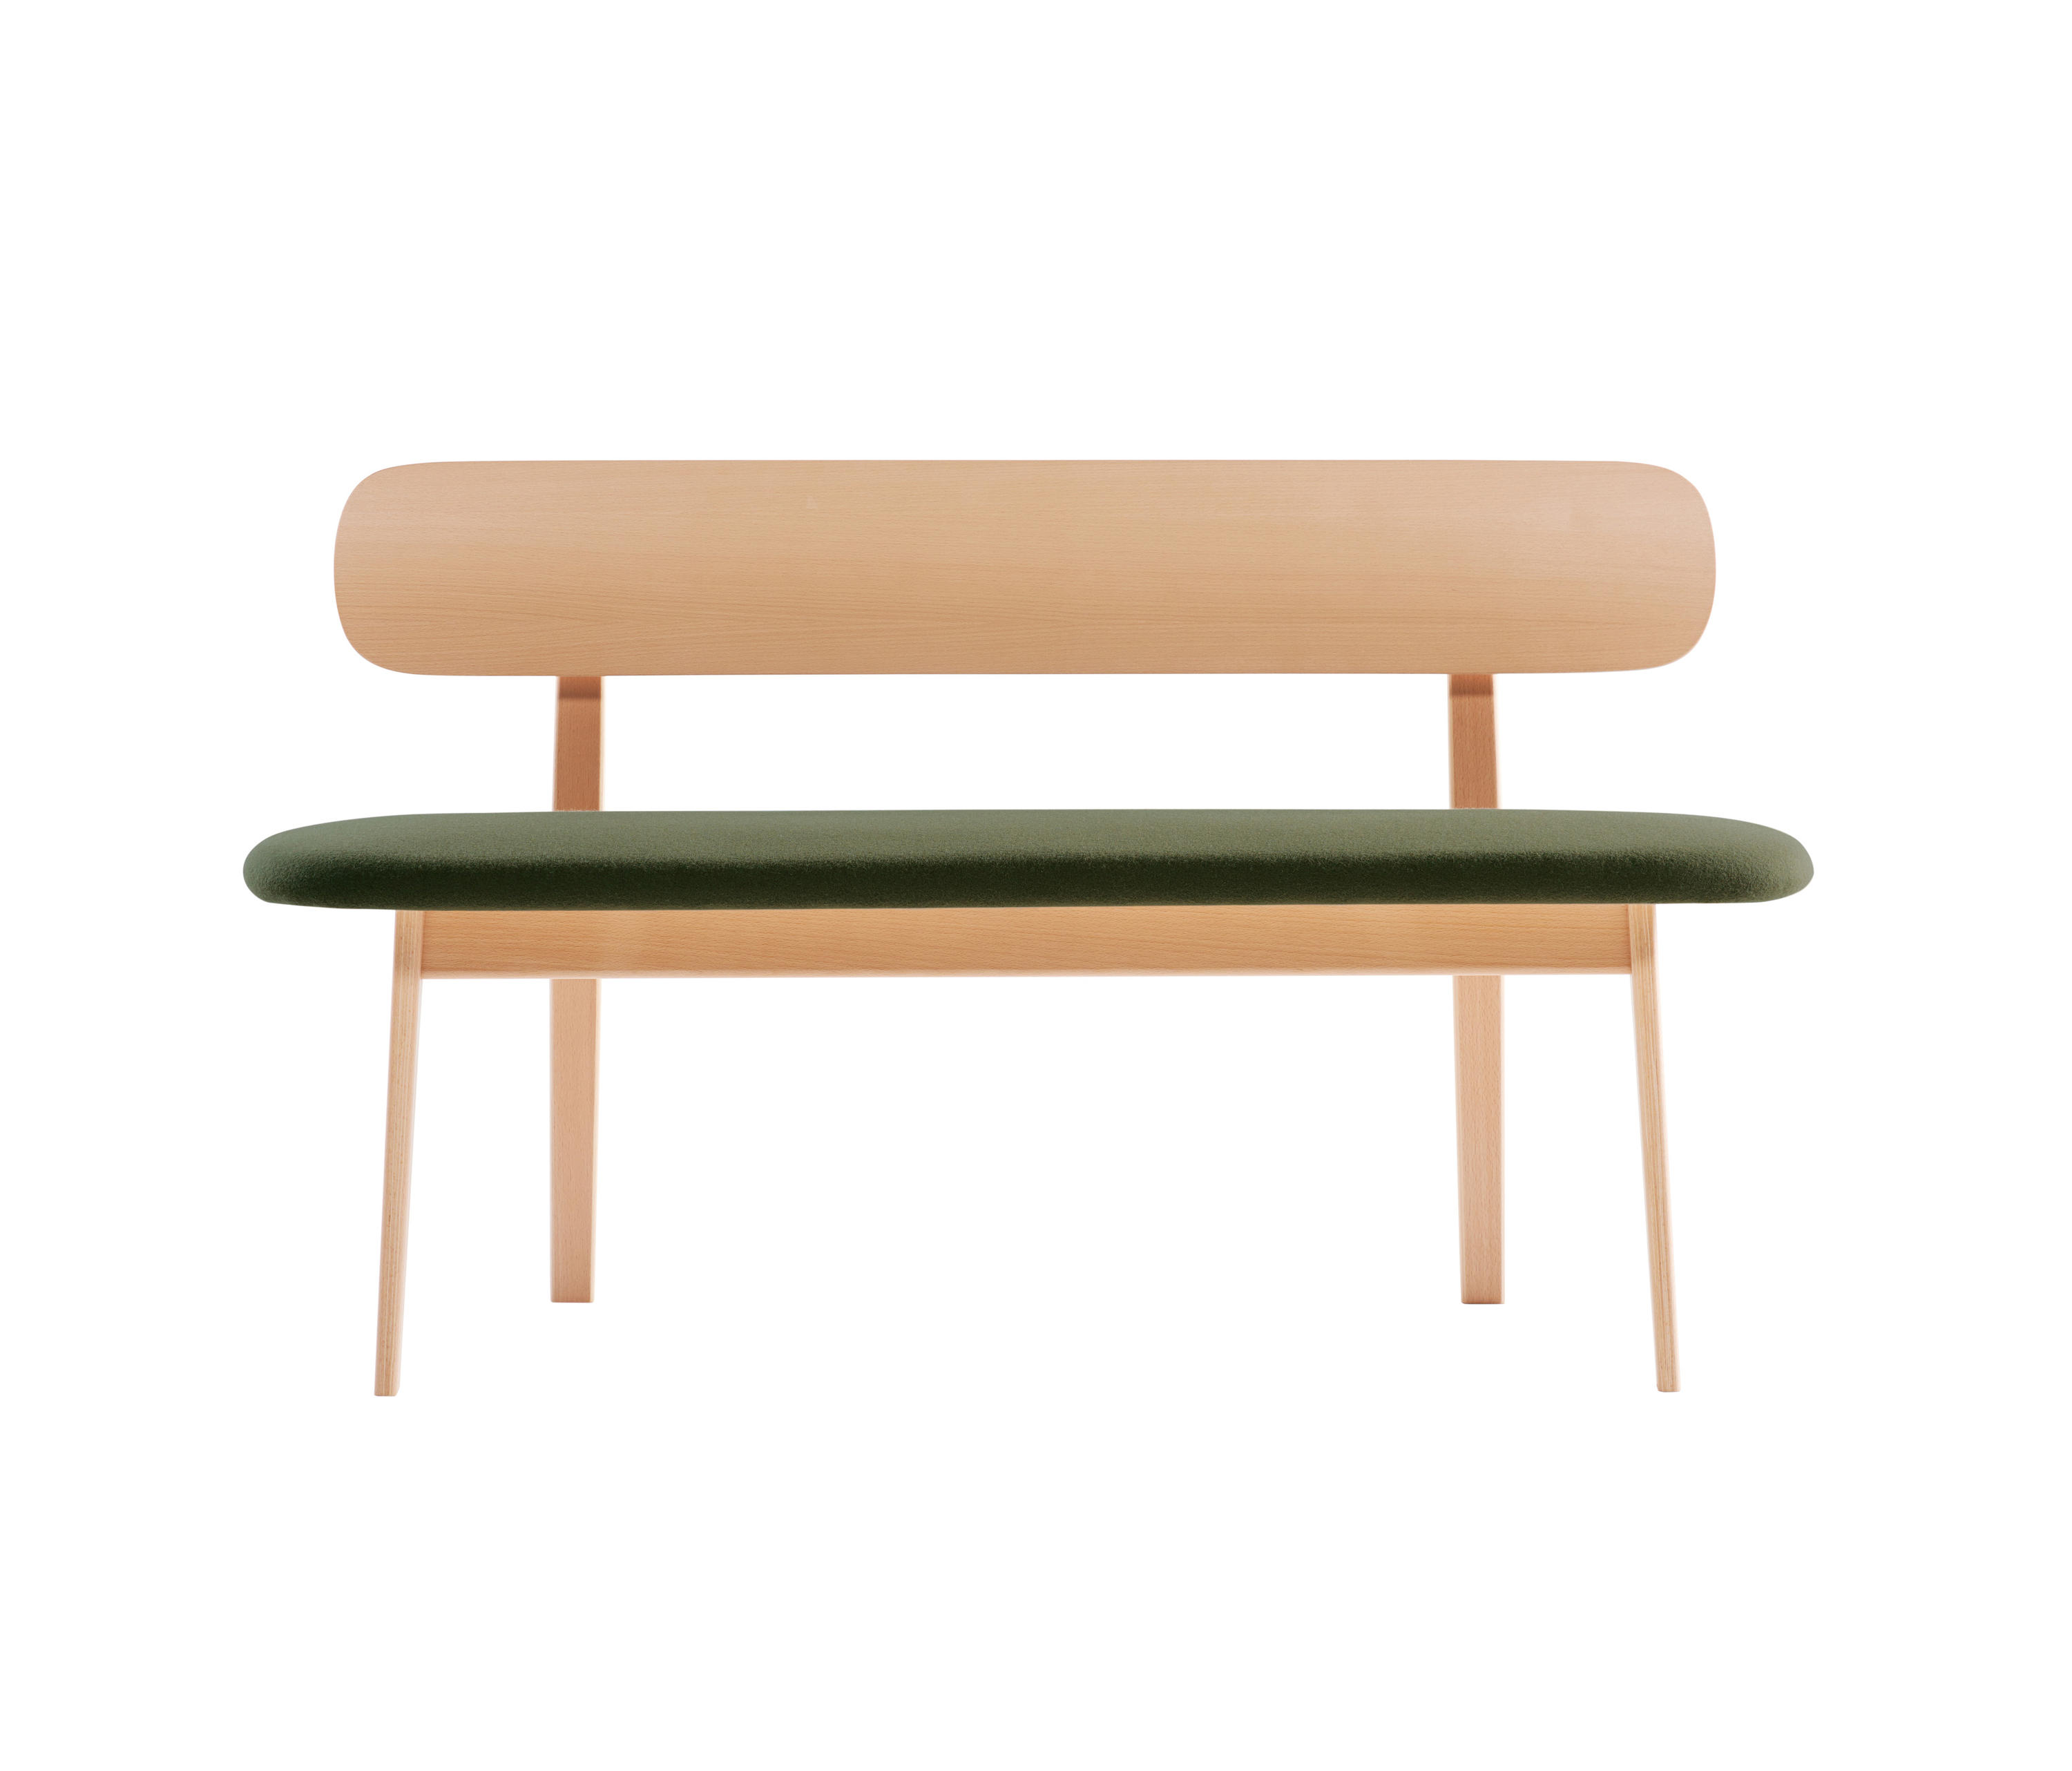 Pleasant Zones Bench Benches From Teknion Architonic Cjindustries Chair Design For Home Cjindustriesco